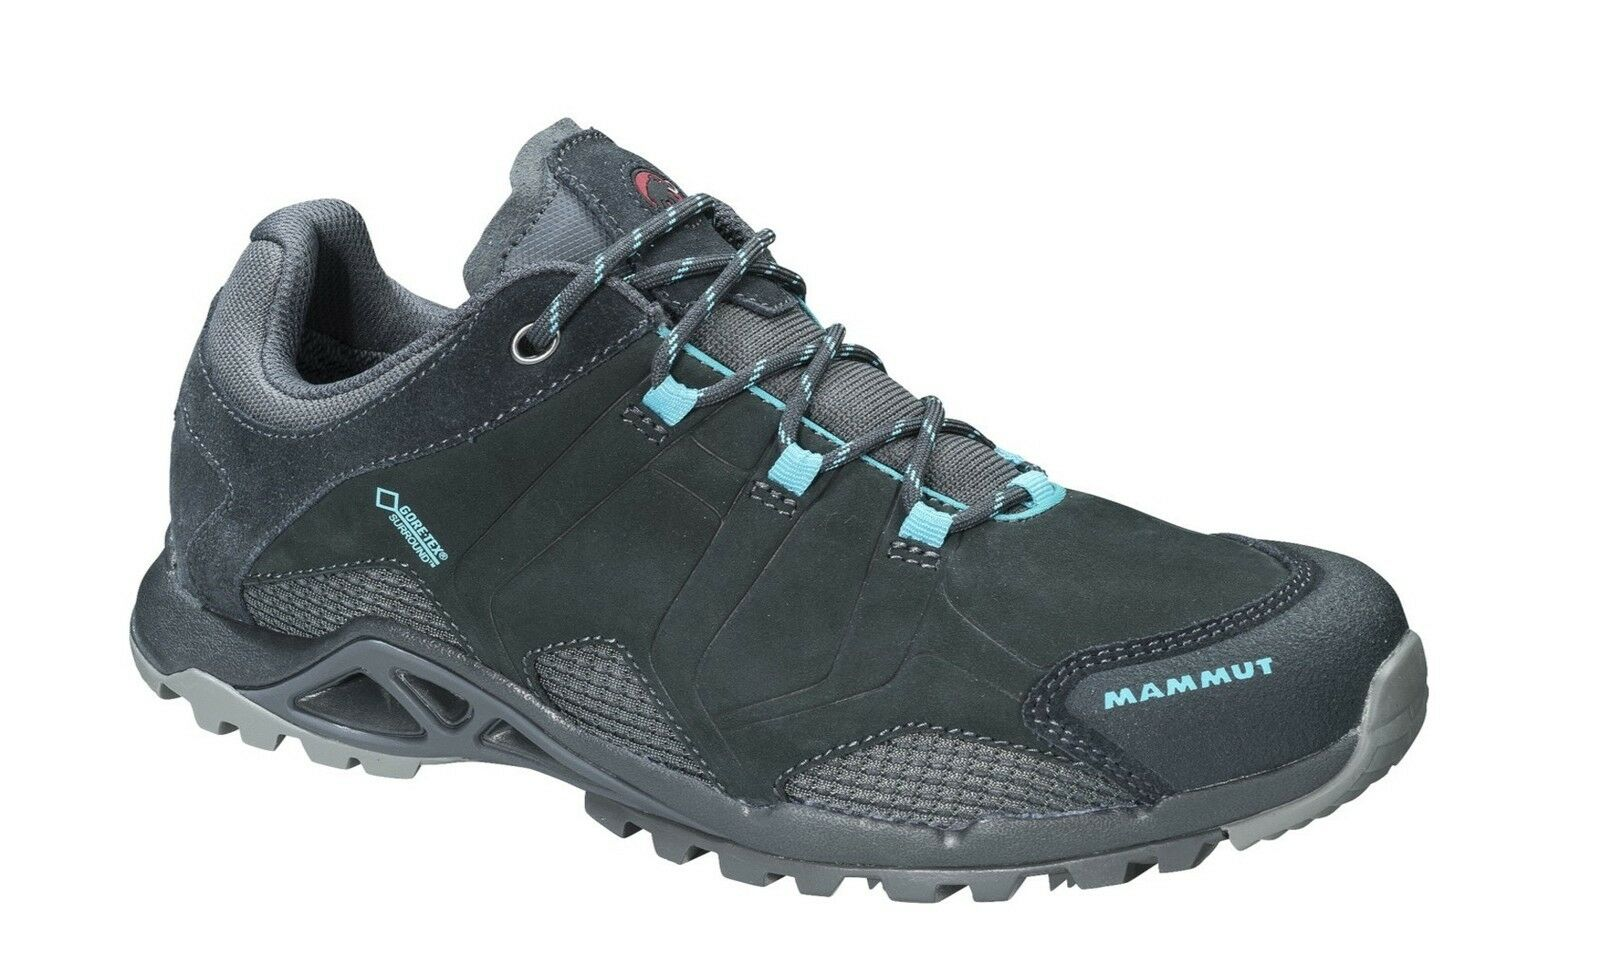 Mammut Comfort Tour Low GTX Surround daSie, Ladies Easy-hikingschuh